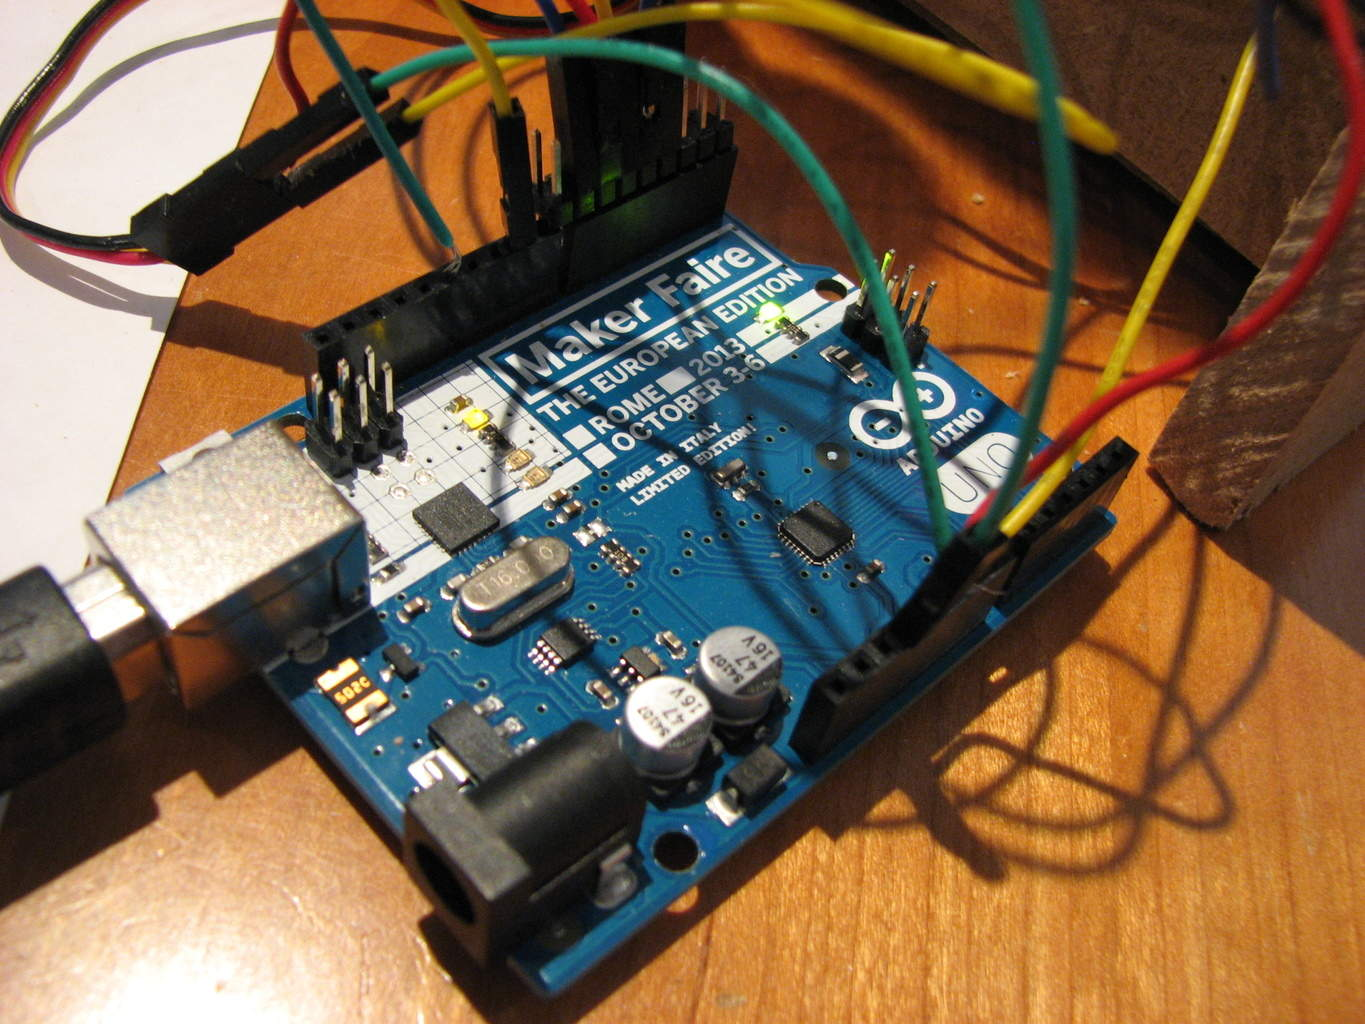 Timer Project with Gong - Build Electronic Circuits